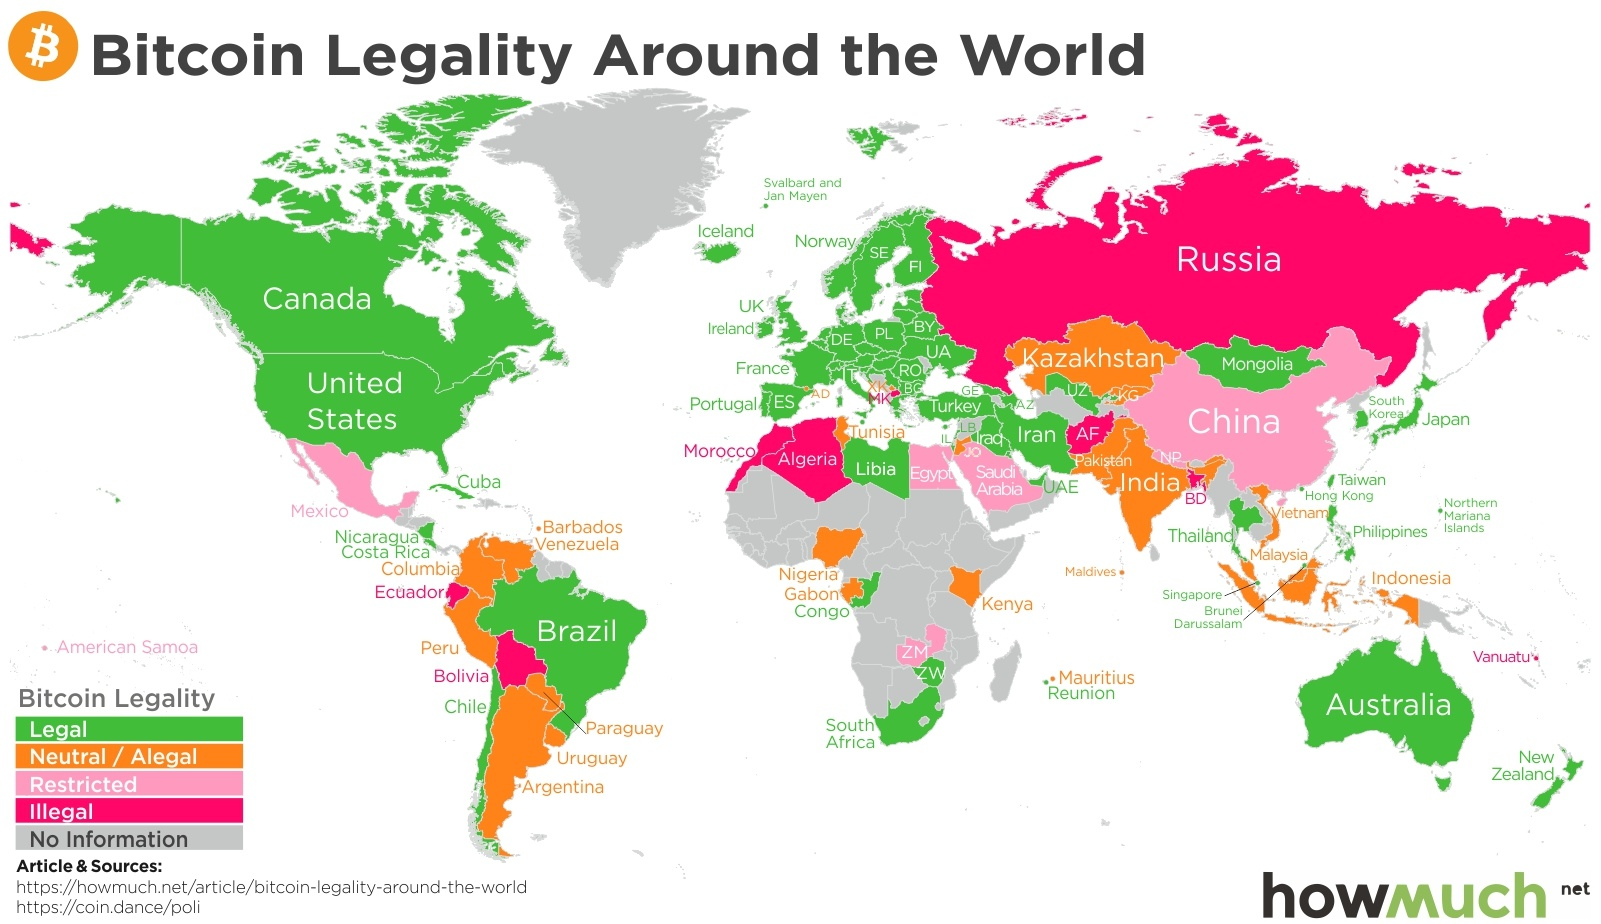 Bitcoins legality around the world map valuewalk in our visual we wanted to highlight the globe and where each country stands on bitcoin using a color legend we created a range of bitcoin legality that gumiabroncs Images